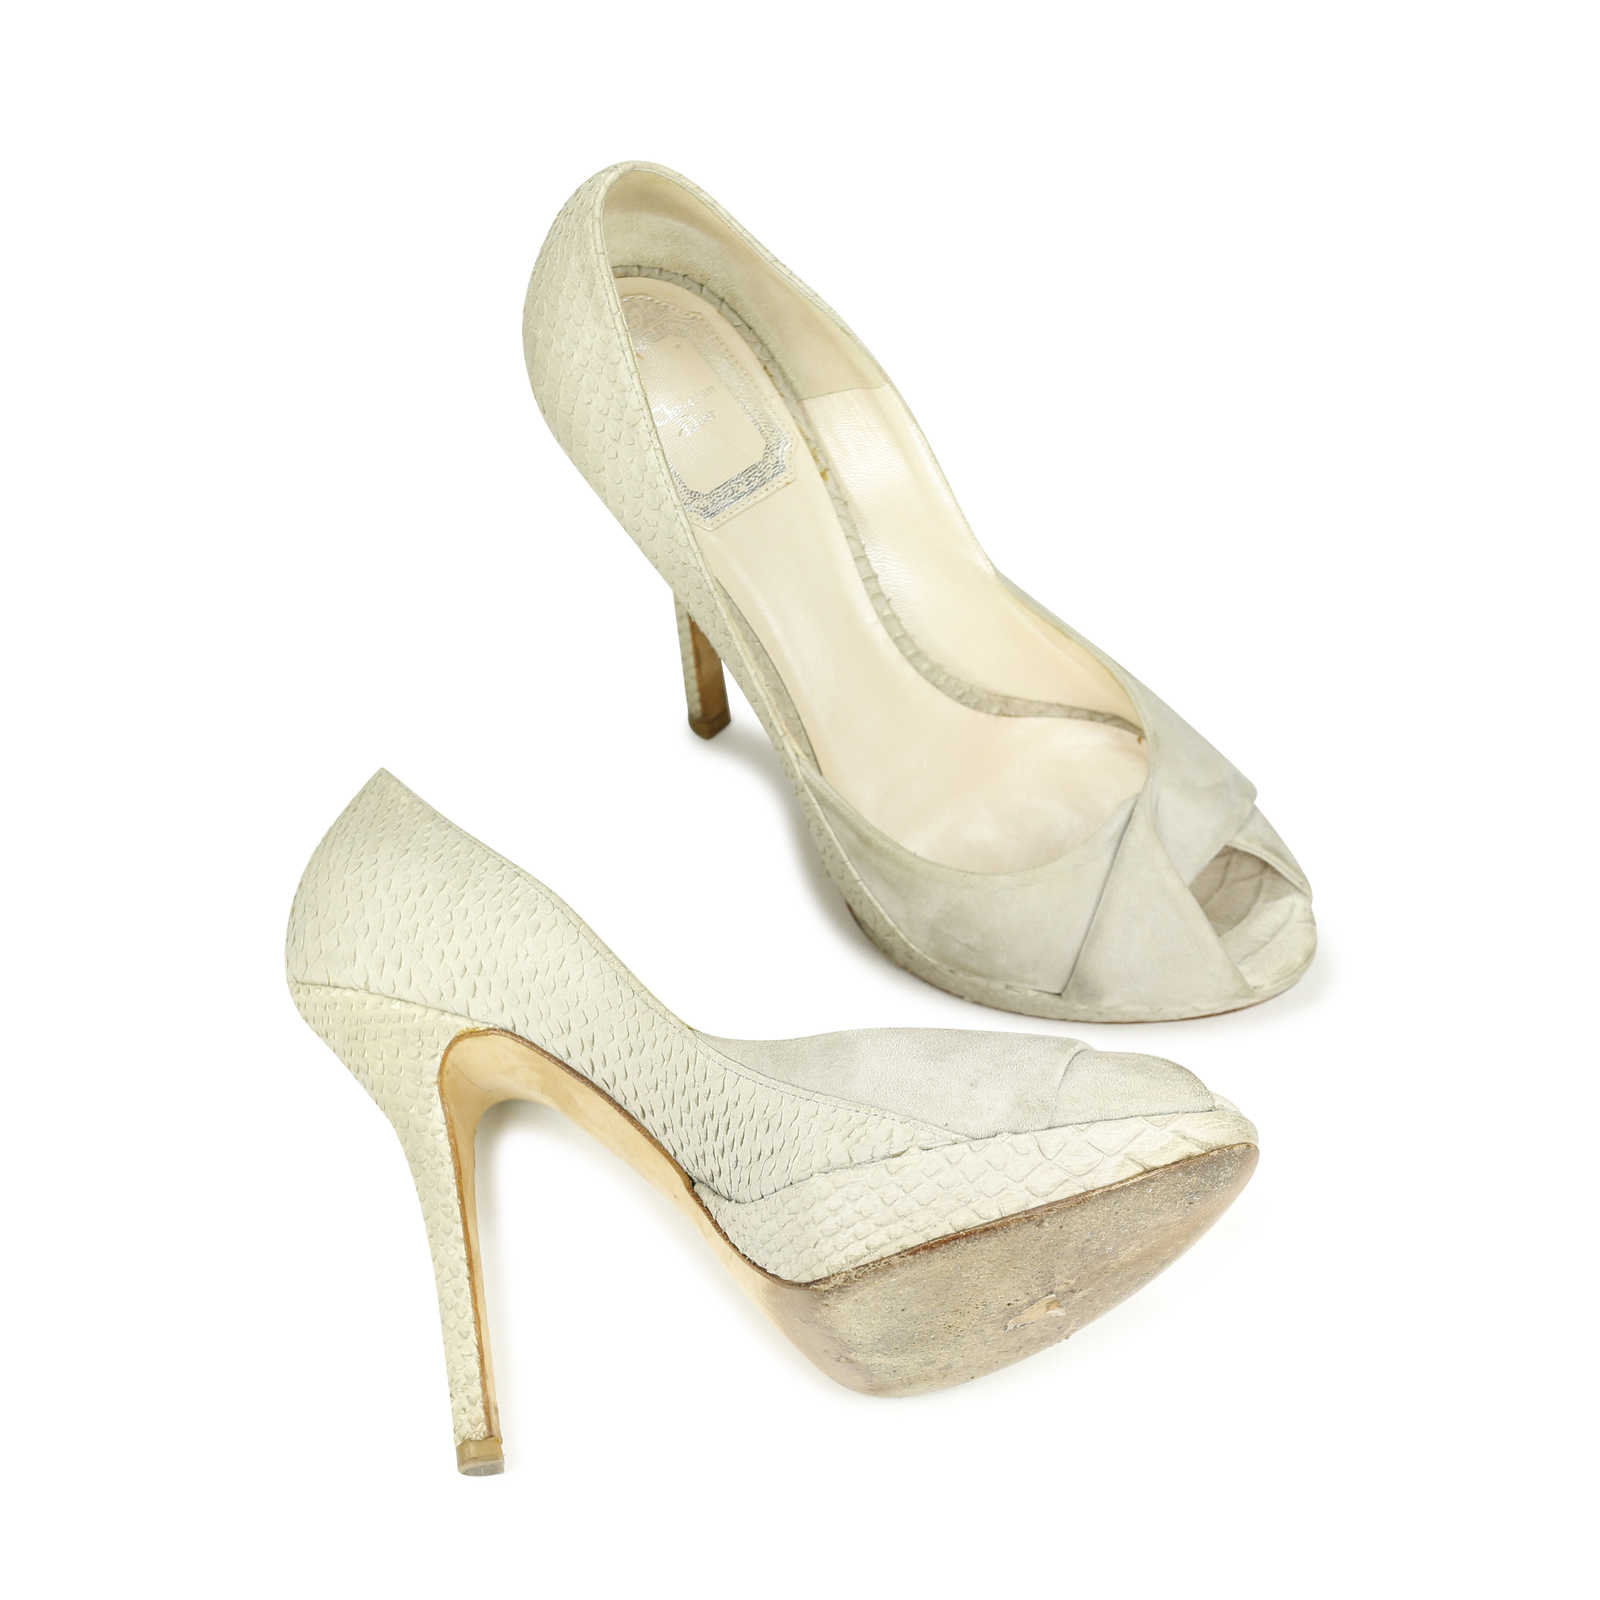 discount wholesale exclusive cheap online Christian Dior Twist Snakeskin Pumps for sale very cheap outlet sneakernews classic m4YU1uO